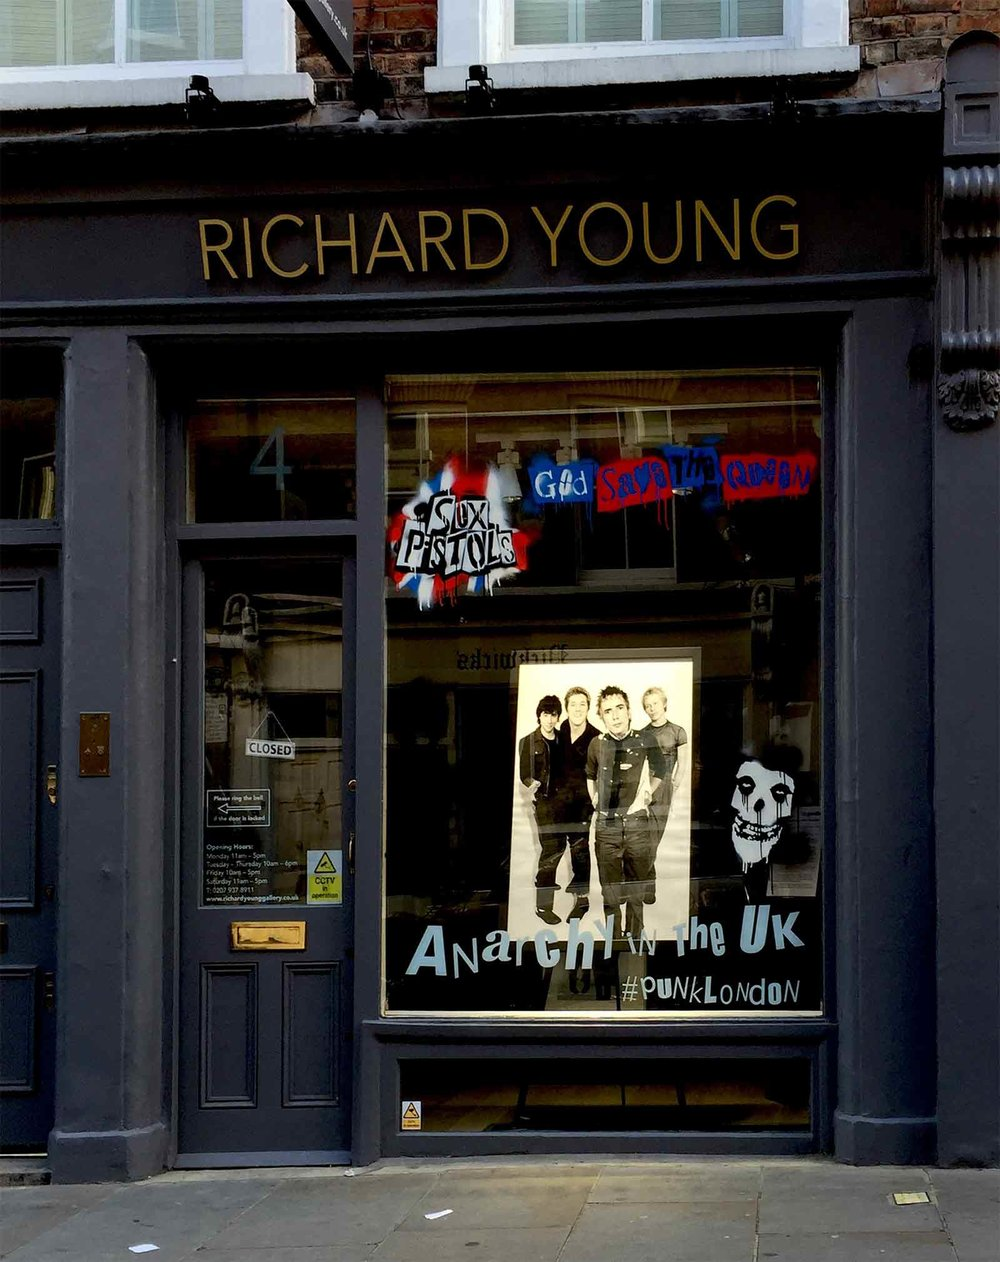 Richard-Young-Web-5.jpg